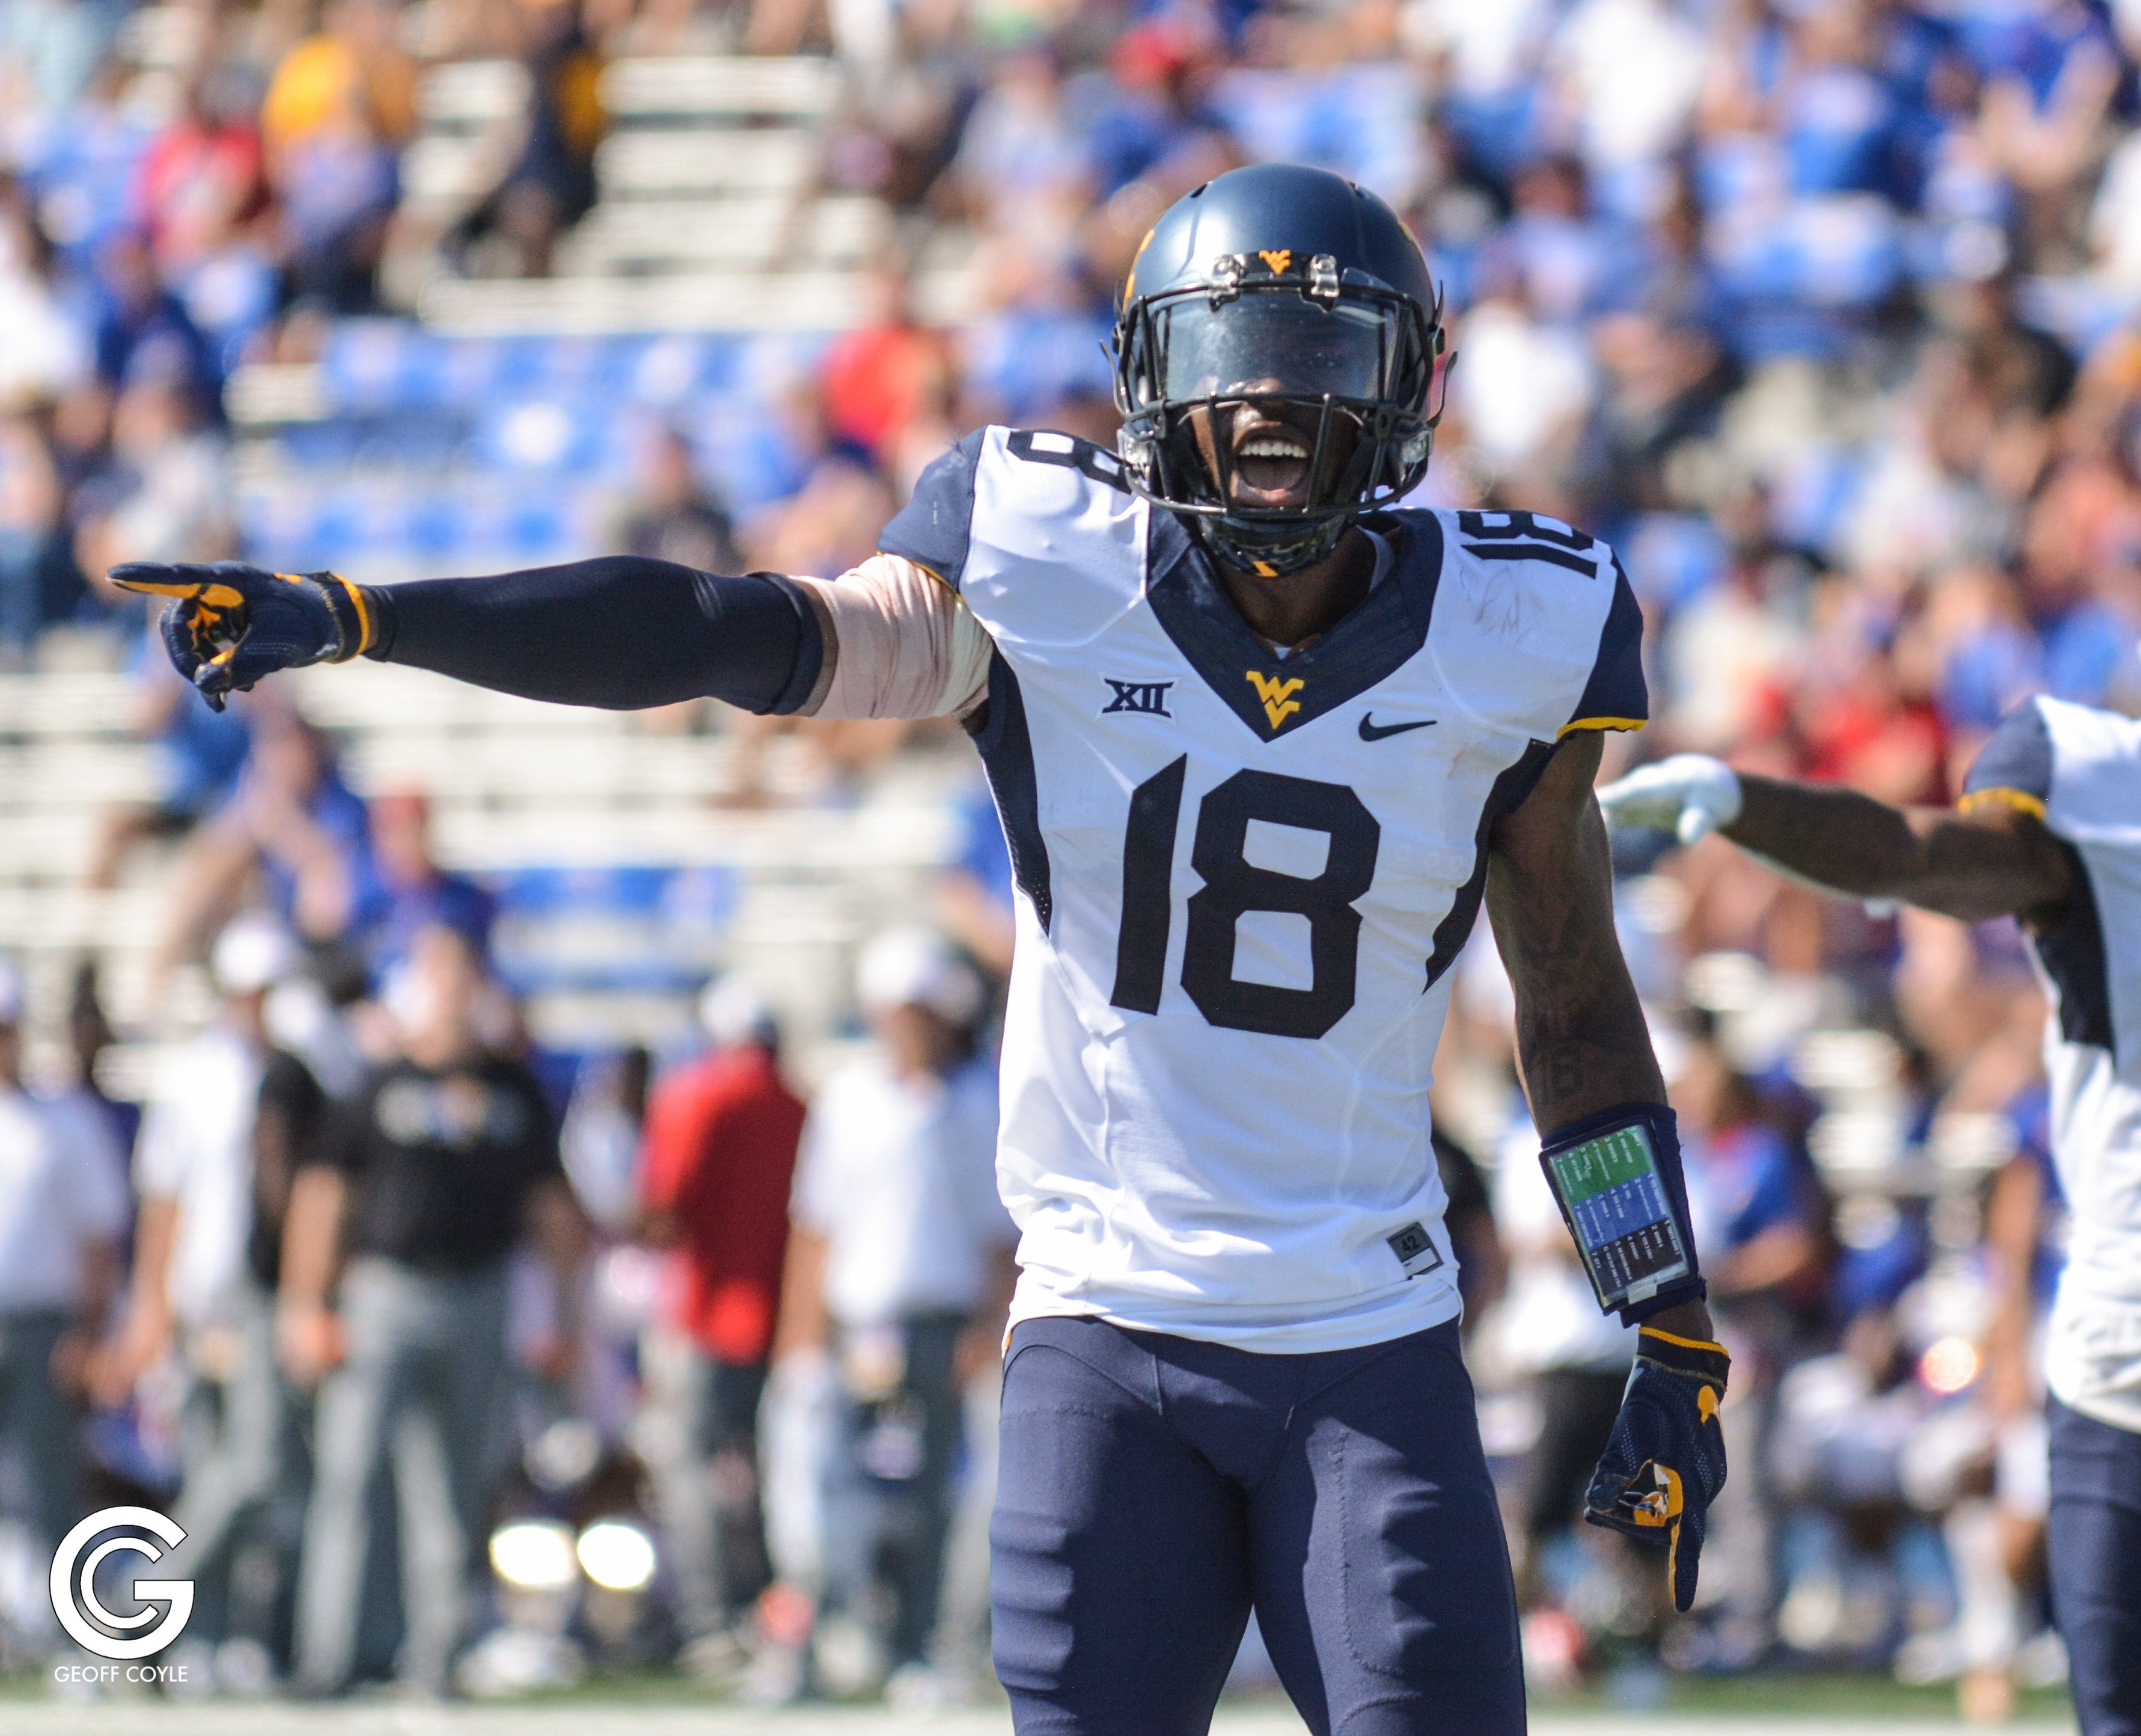 WVU senior safety Marvin Gross calls out a command in a 56-34 win over Kansas. (PHOTO: Geoff Coyle)